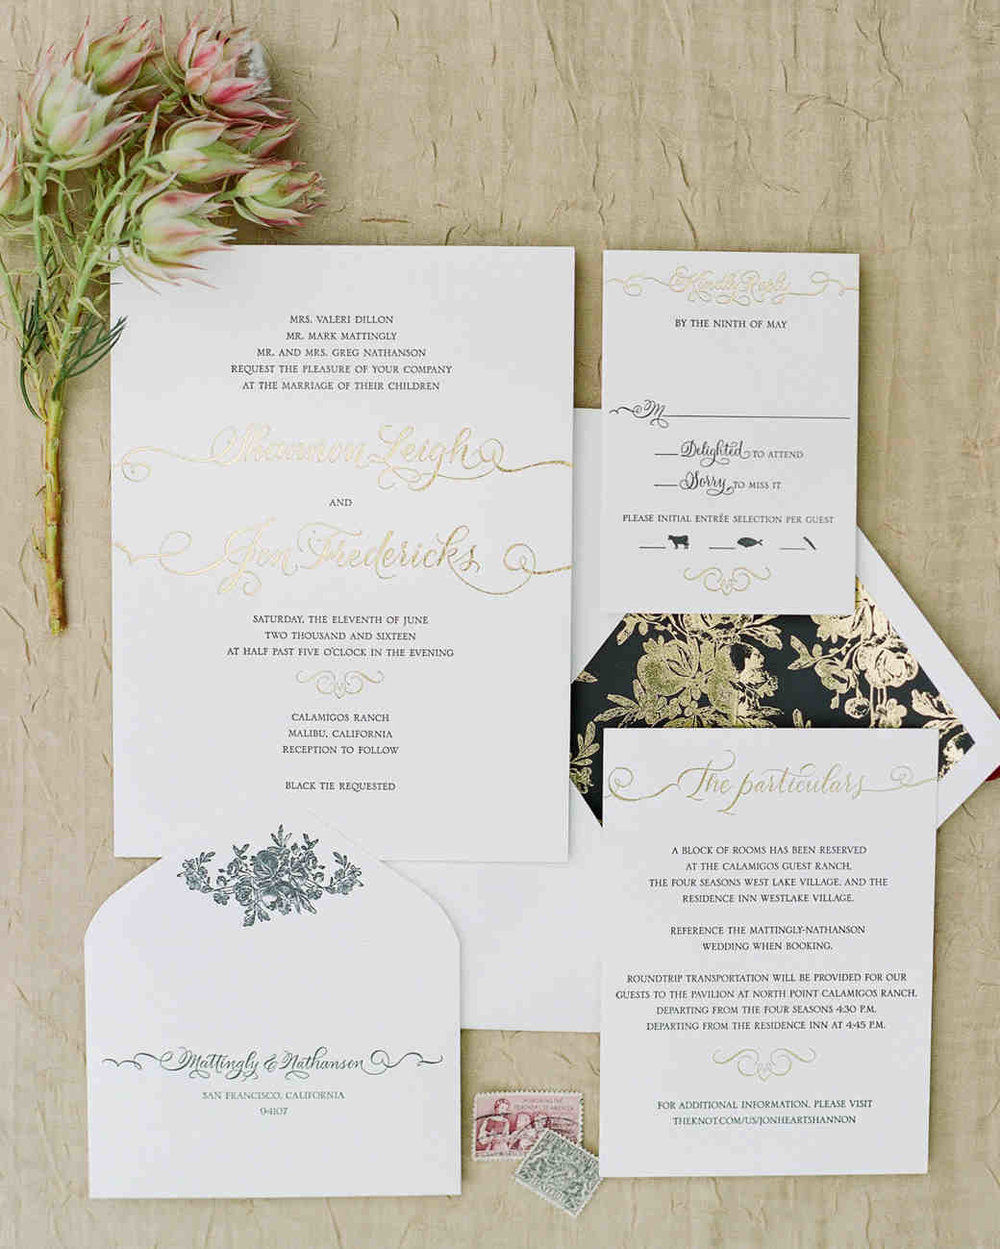 shannon-jon-wedding-stationery-0001-6238579-0117_vert.jpg